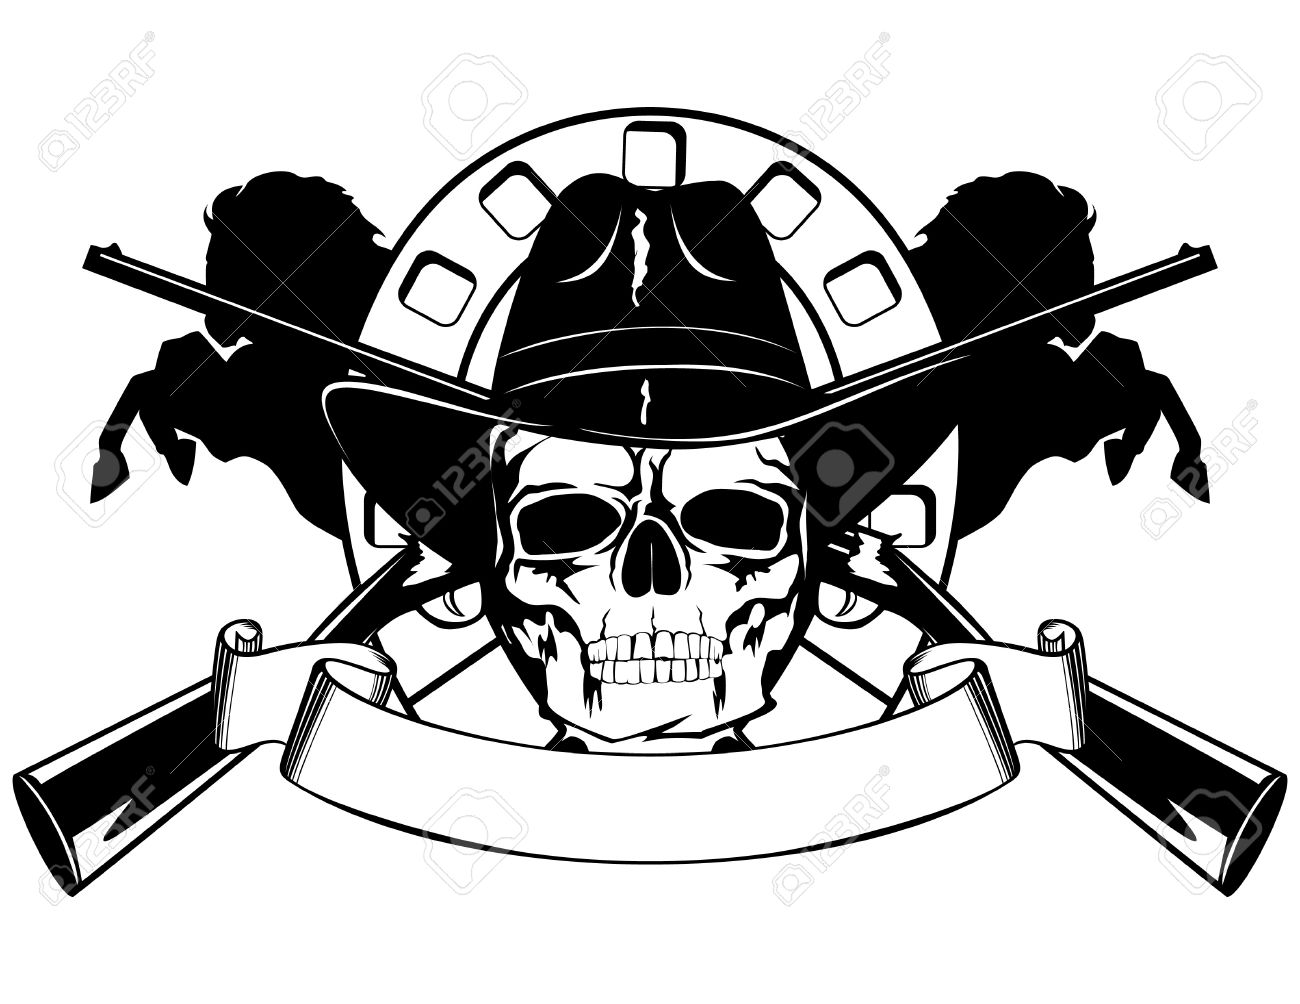 Skull With Cowboy Hat Tattoo Skull in black hat with the